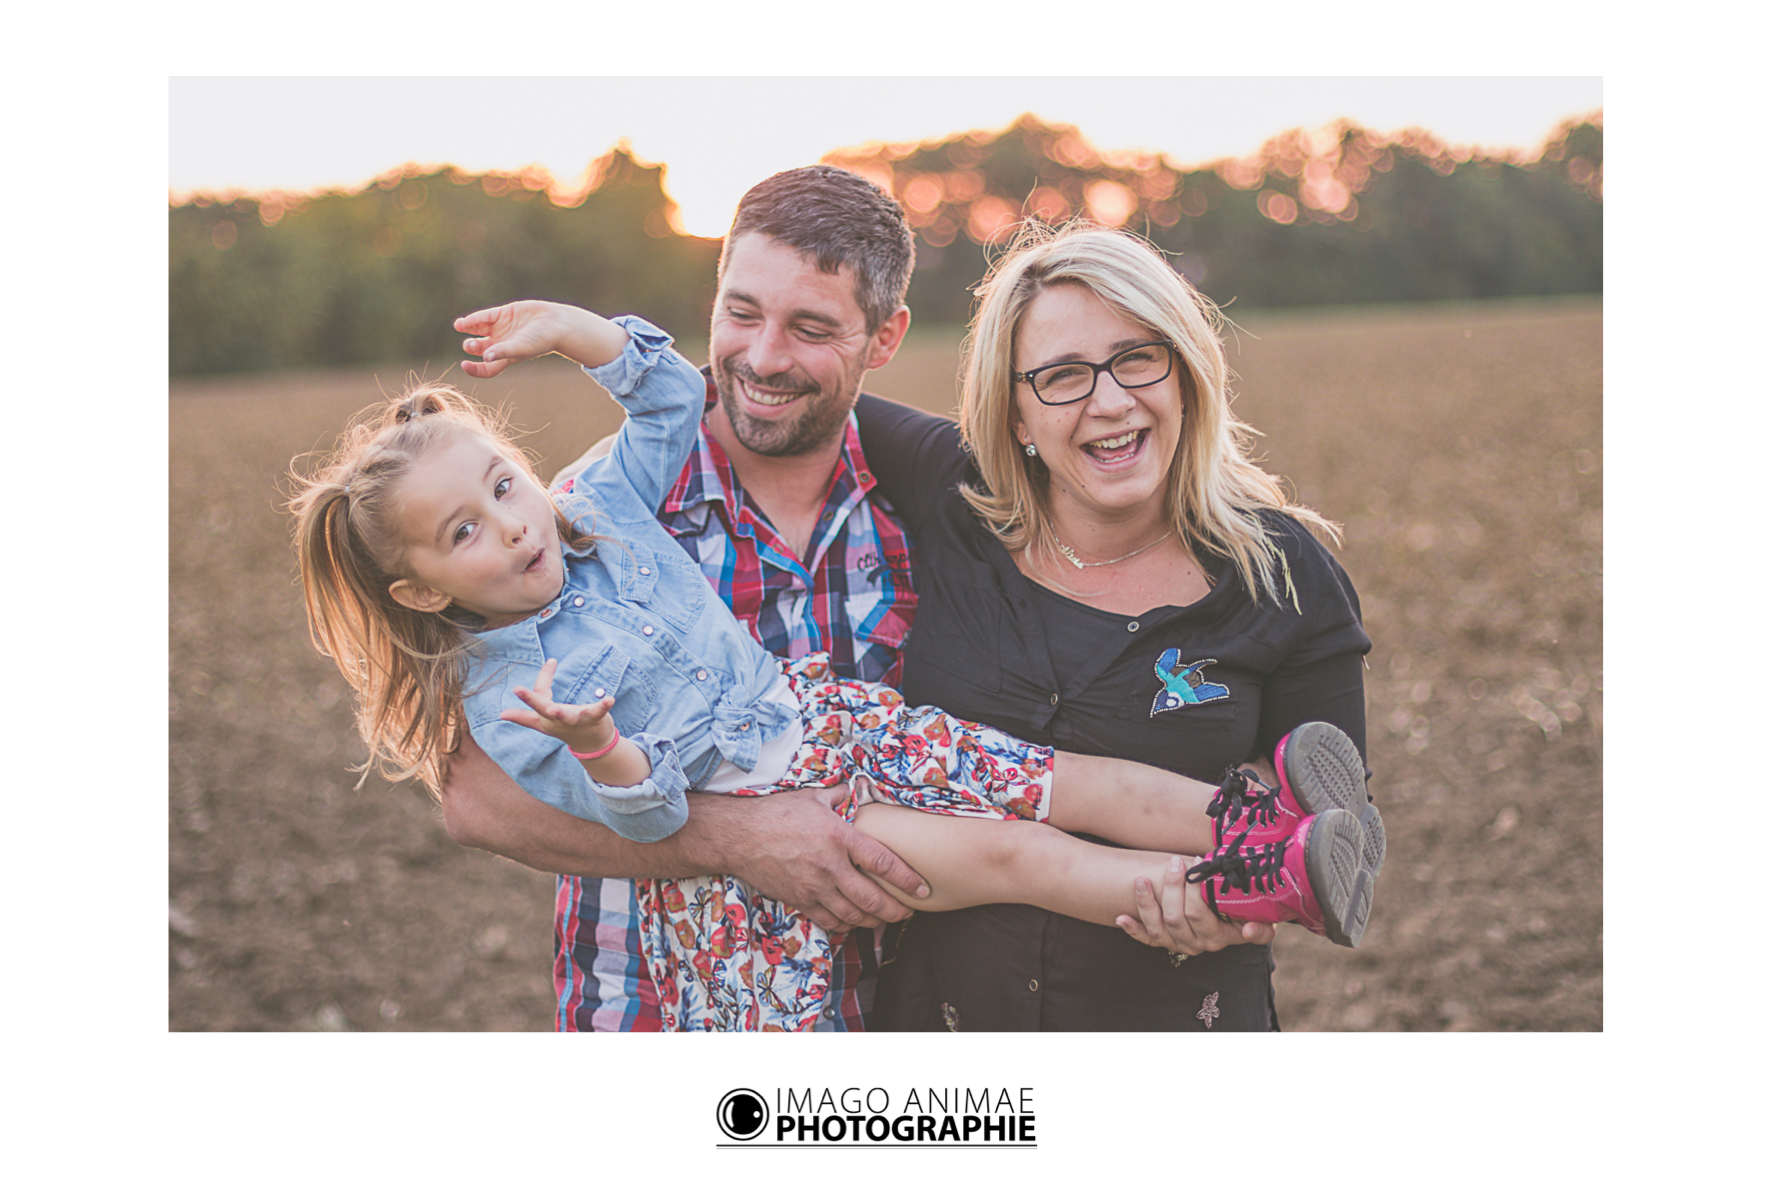 Christophe CAMPS - Imago Animae photographie - Lifestyle